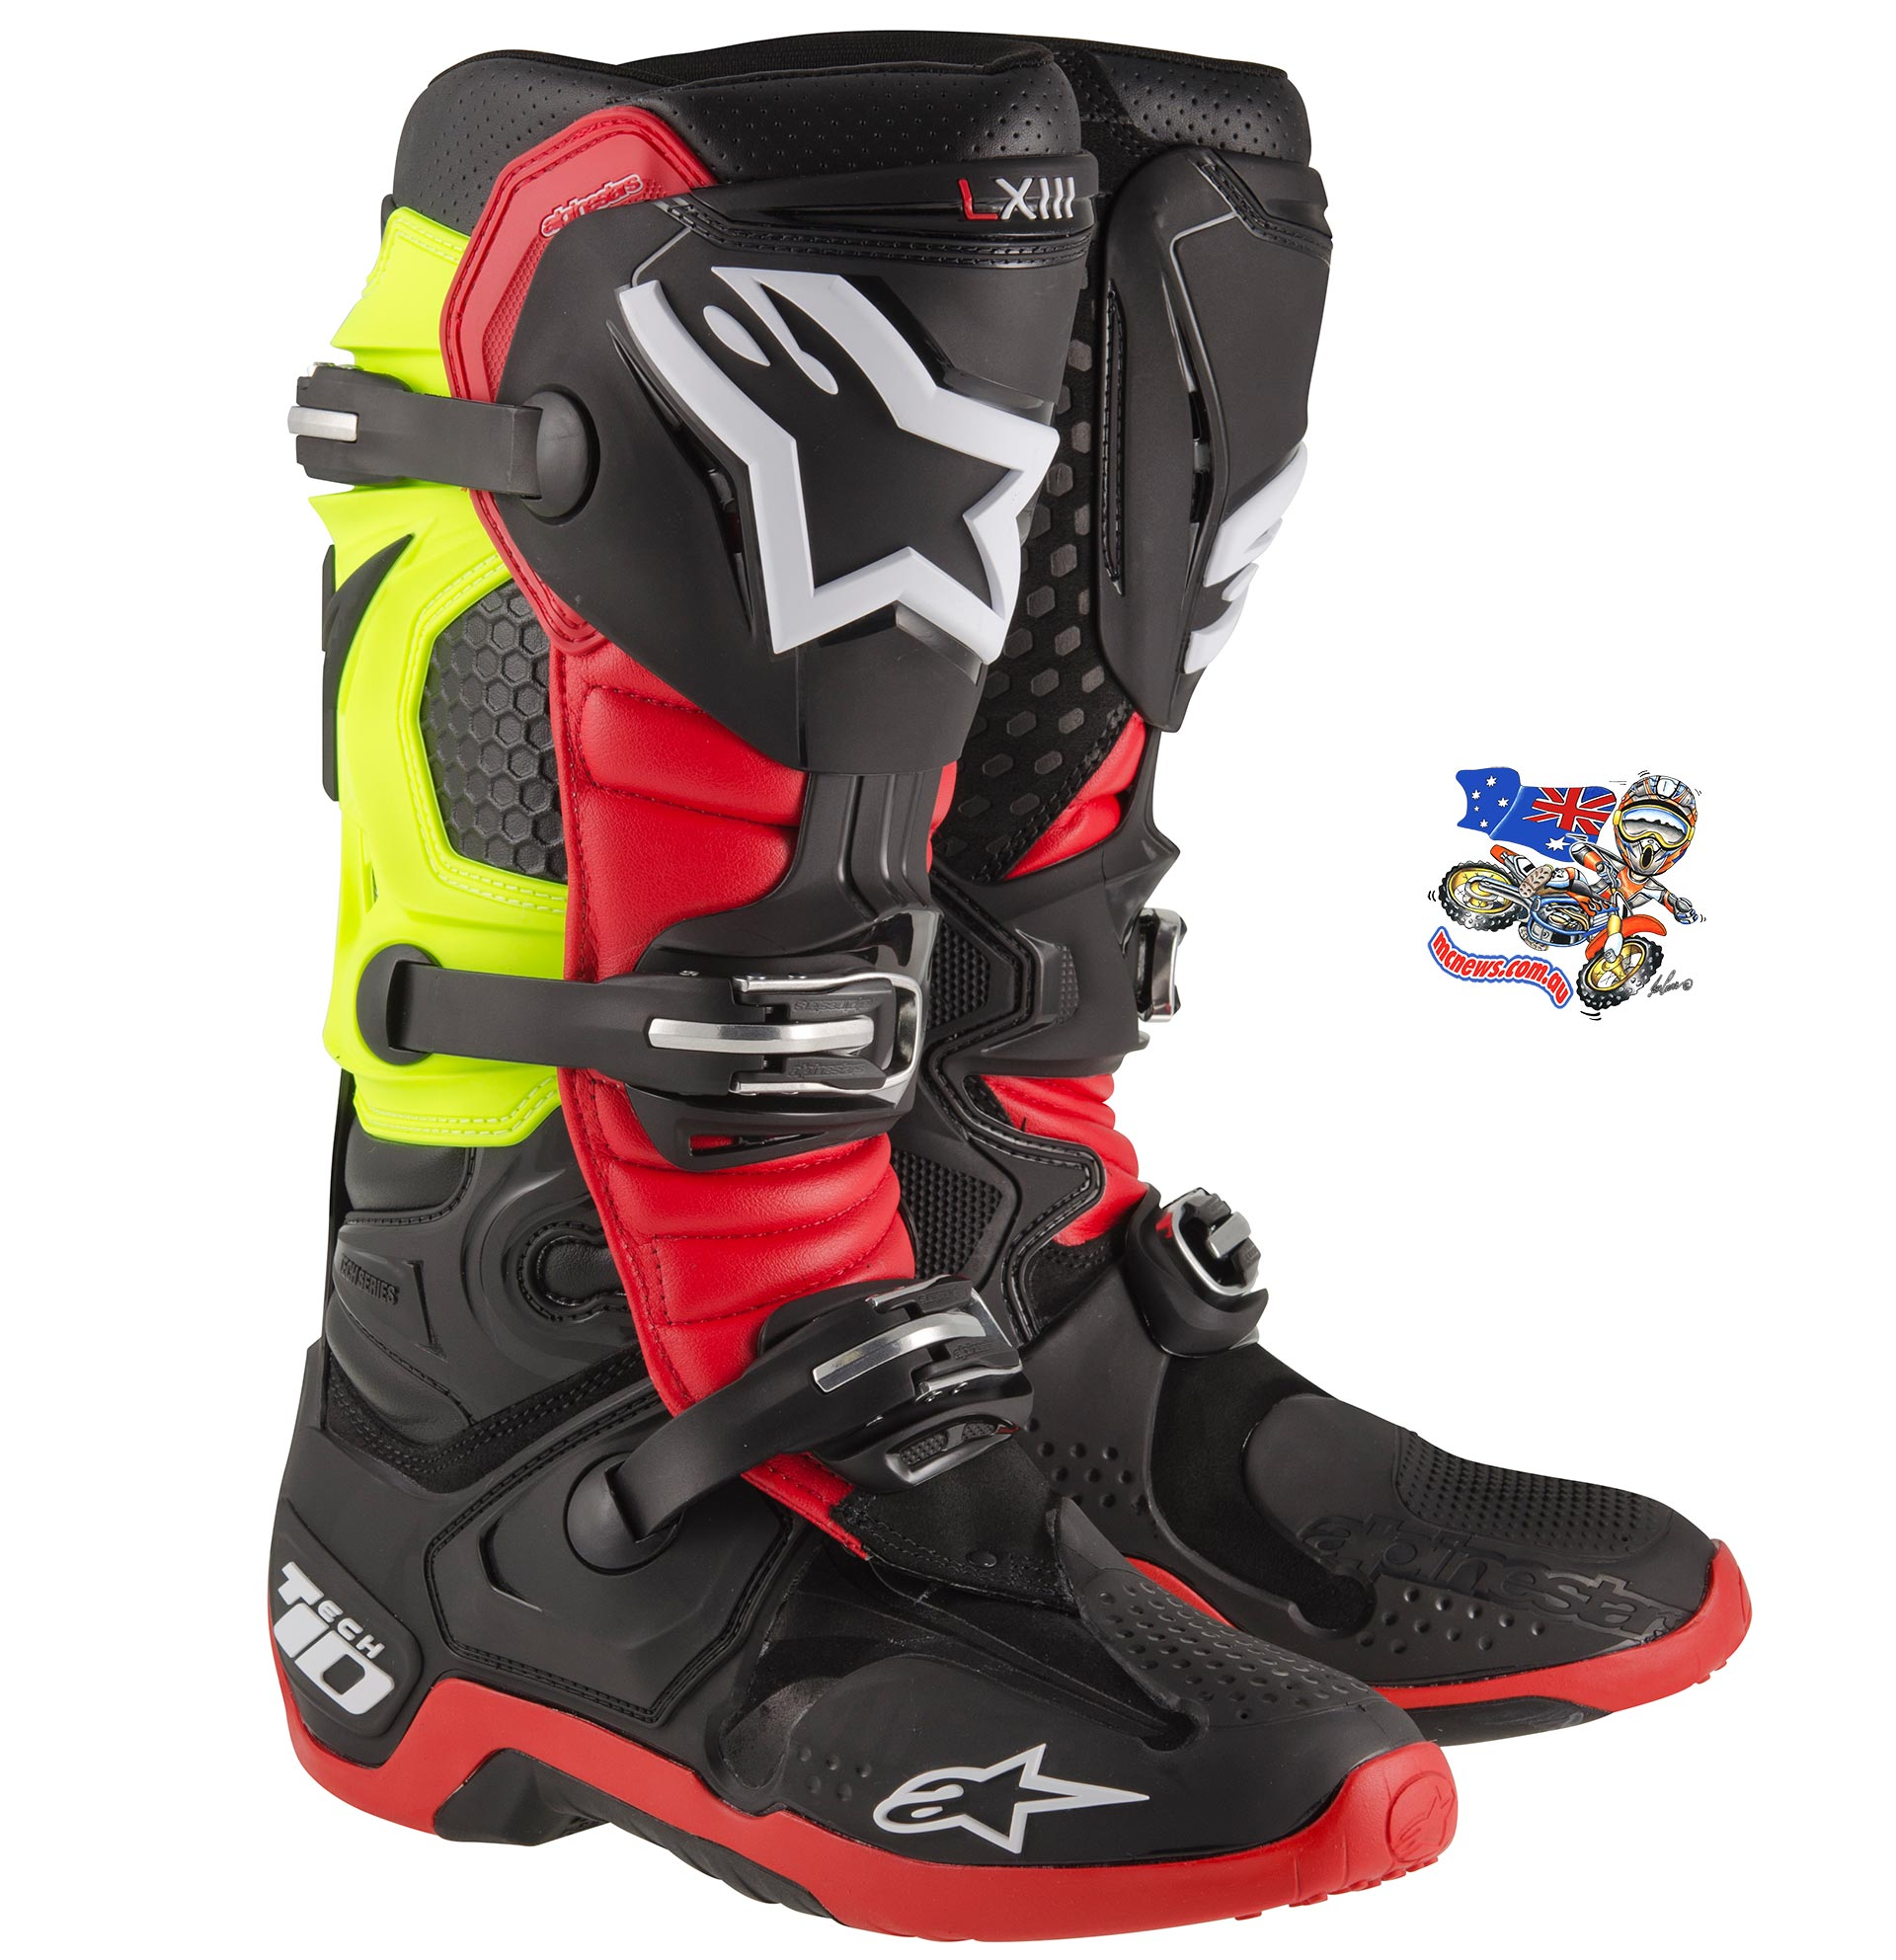 Alpinestars Tech 10 Limited Edition - Black/Red/Fluro Yellow - S2010014136.. sizes US 8-13. - RRP $679.95